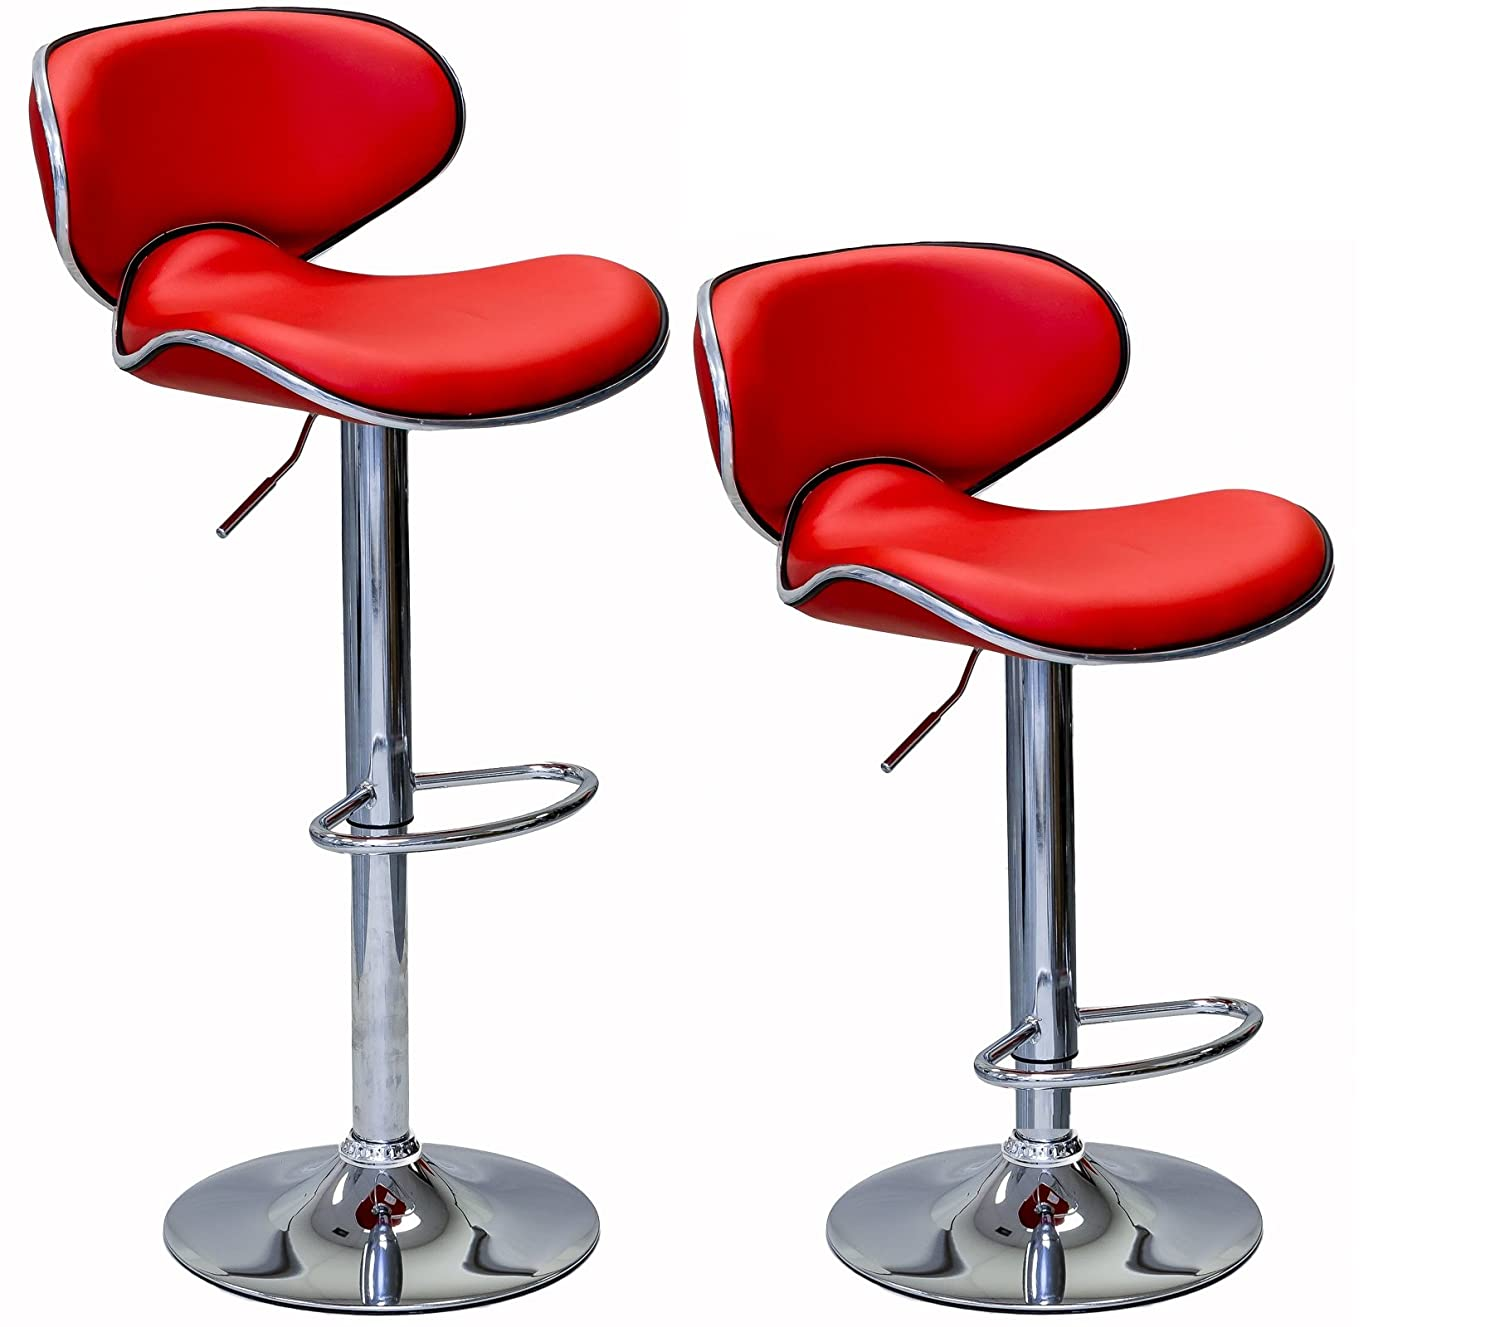 ViscoLogic Series Oasis Height Adjustable Leatherette Saddle Style Seat and High Back Rest 360 Swivel 24 to 33 inch Bar Stool with Chrome Pole & Base with Hard Floor Protection Plastic (Set of 2 Stools) (Black)